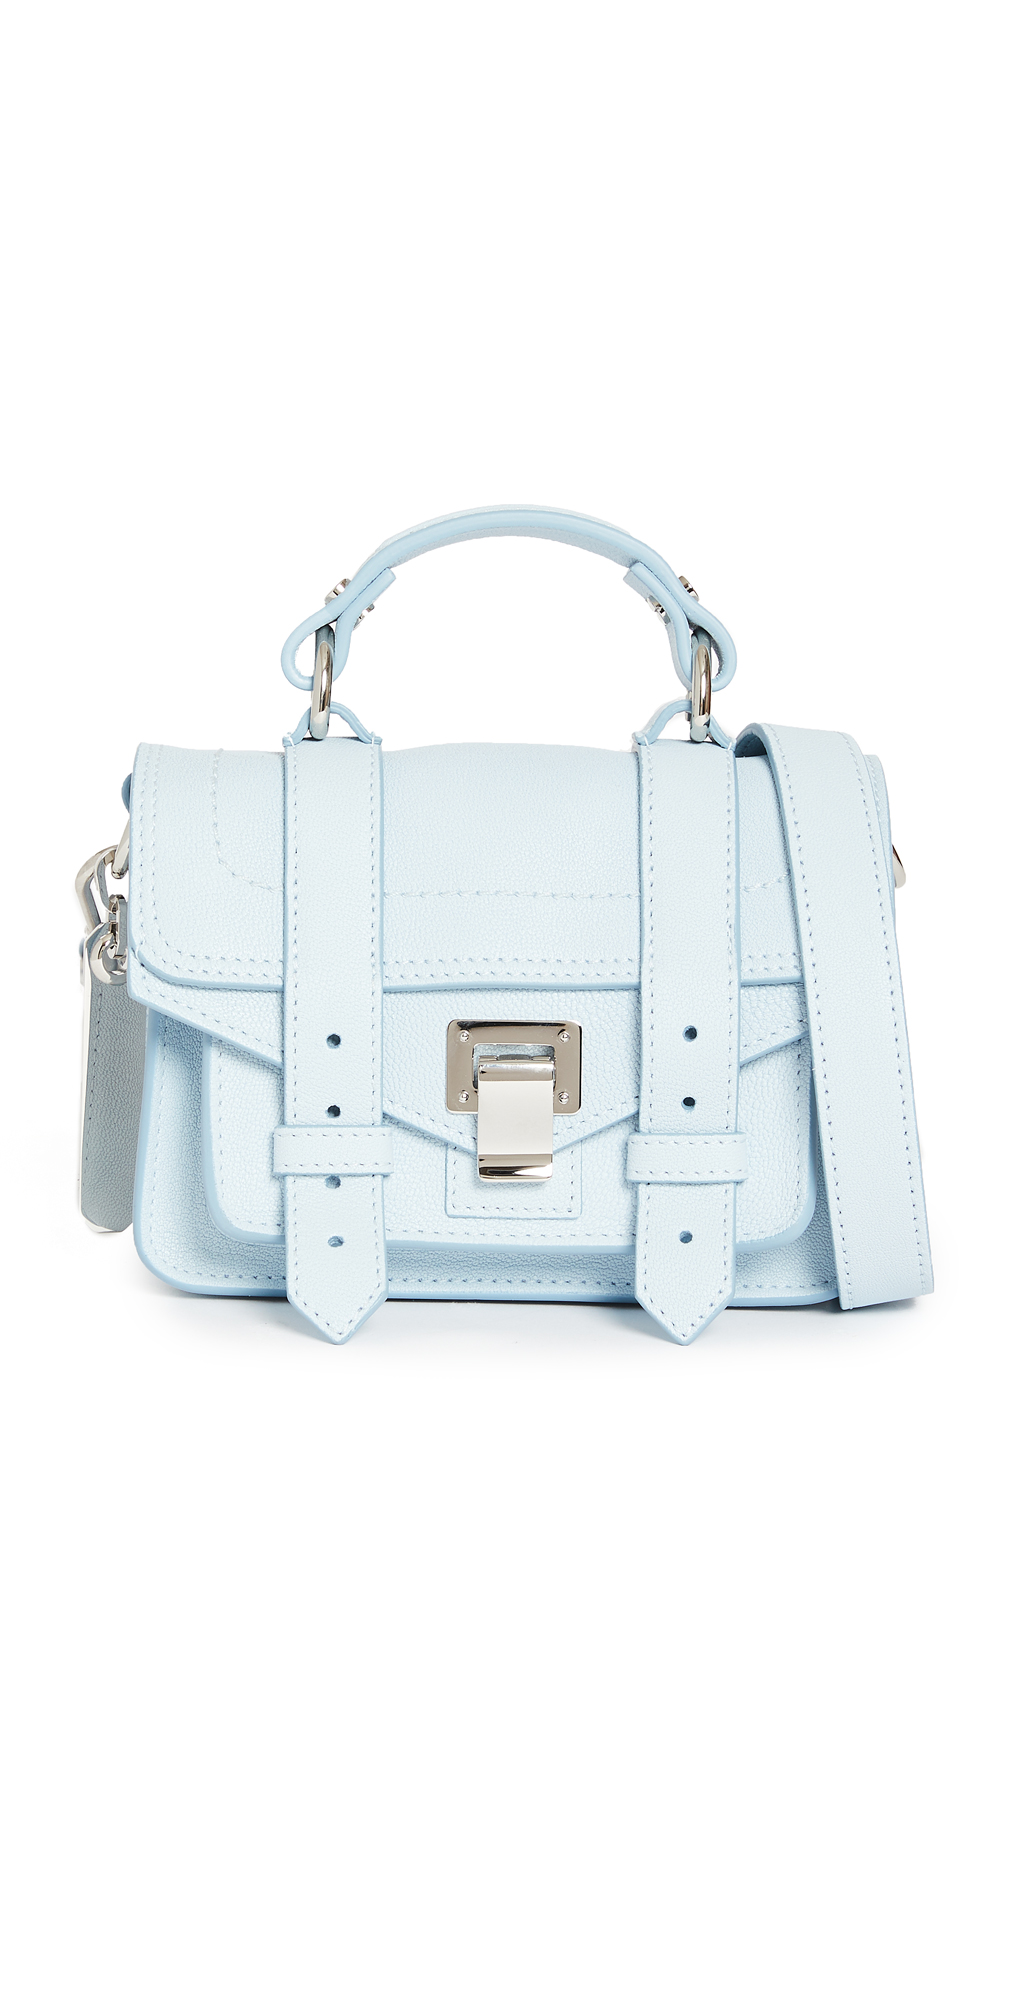 Proenza Schouler PS1 Micro Bag Baby Blue One Size